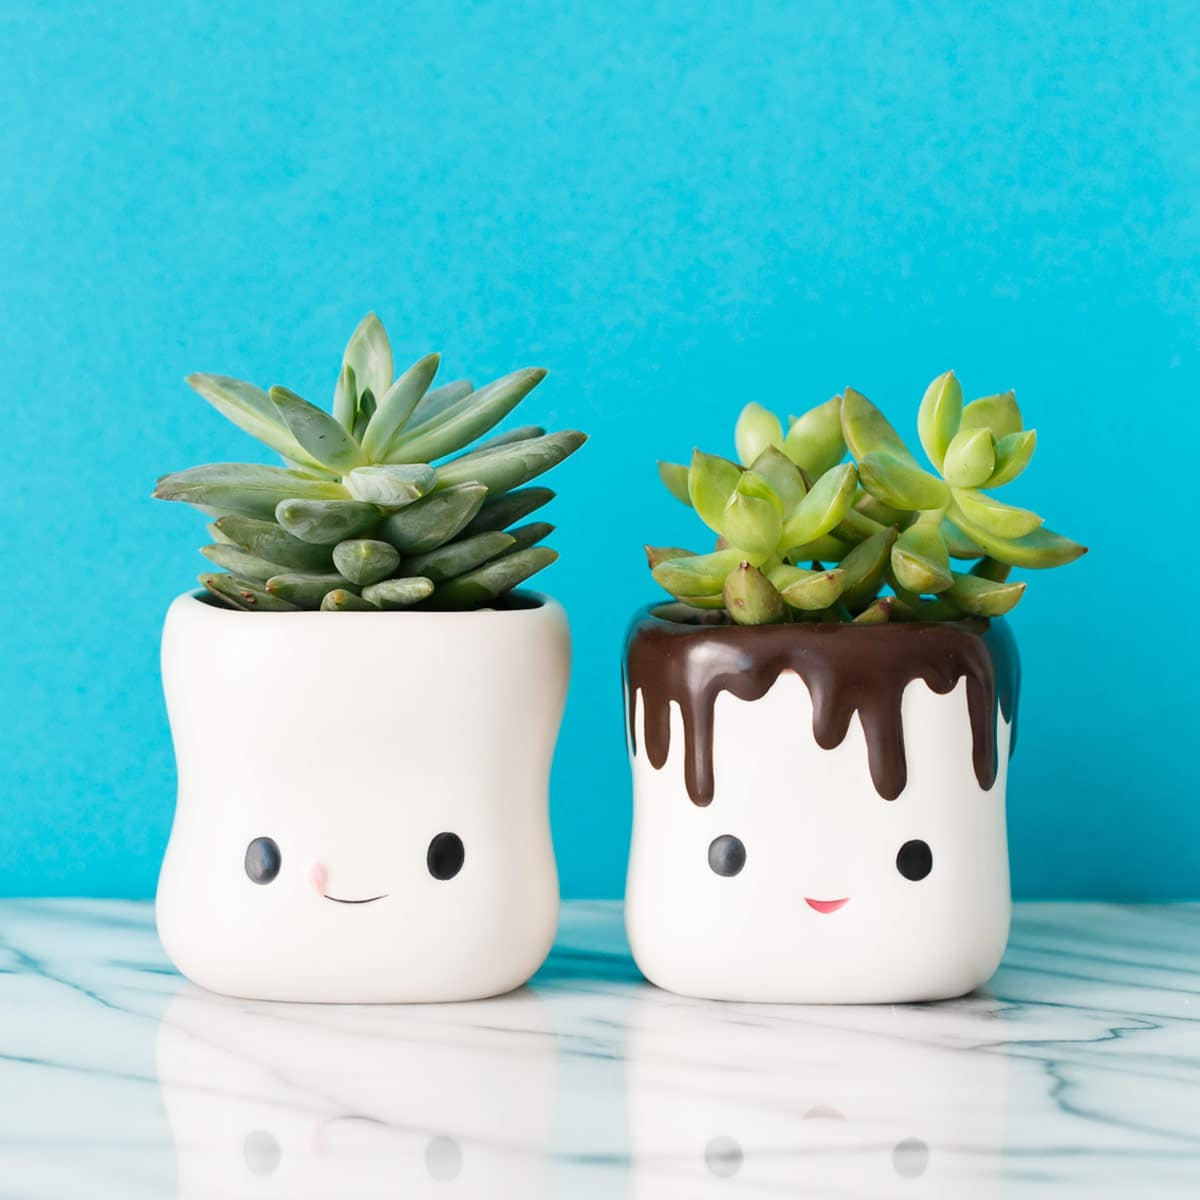 Cute Succulents in Hot Chocolate Cups